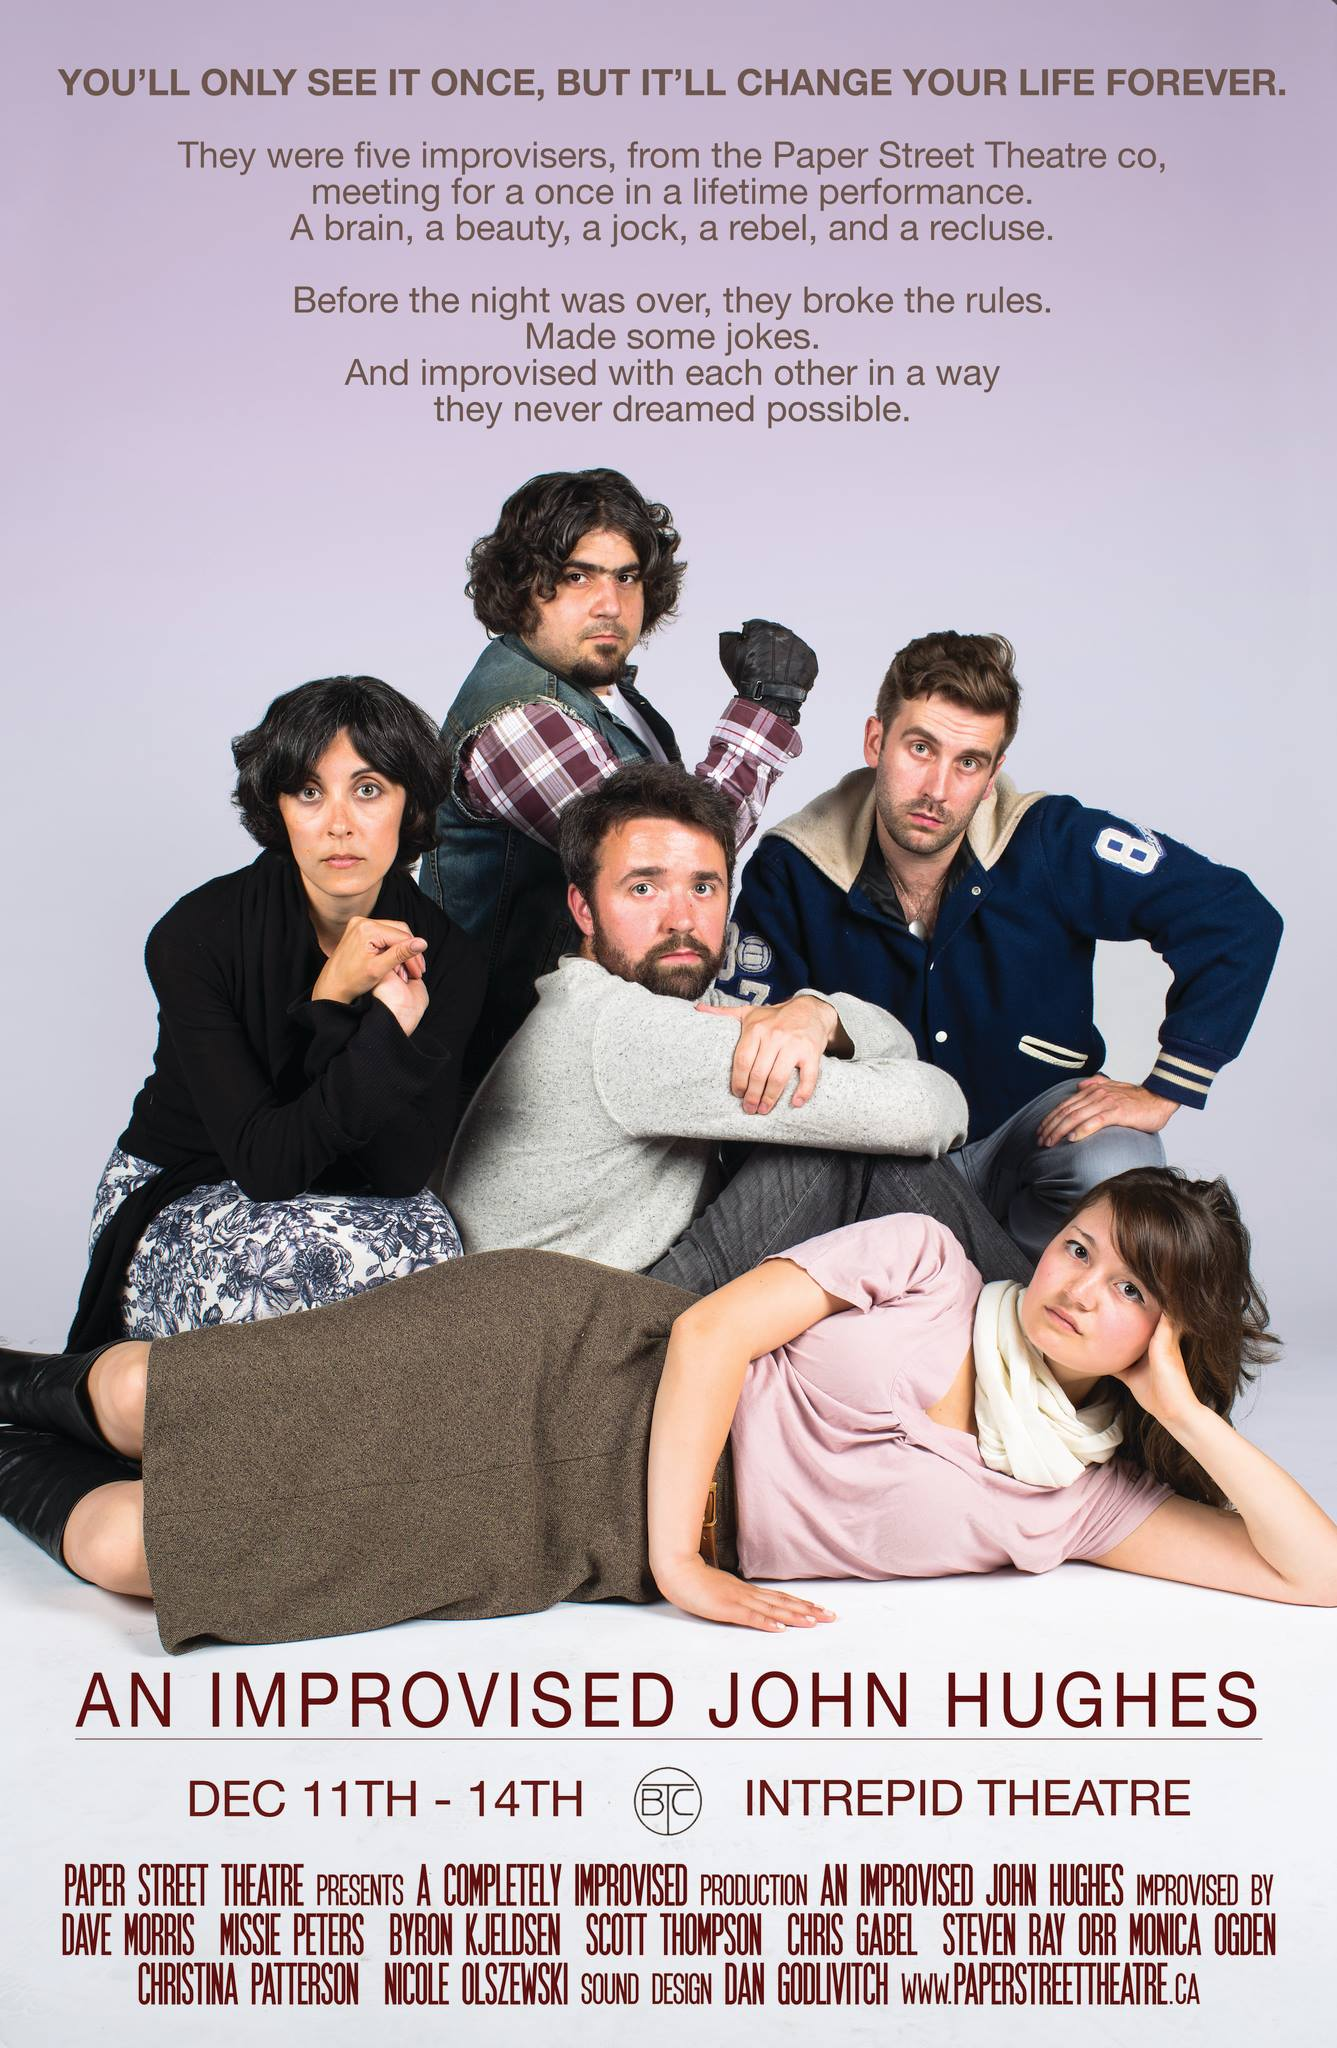 An Improvised John Hughes Dec 2013